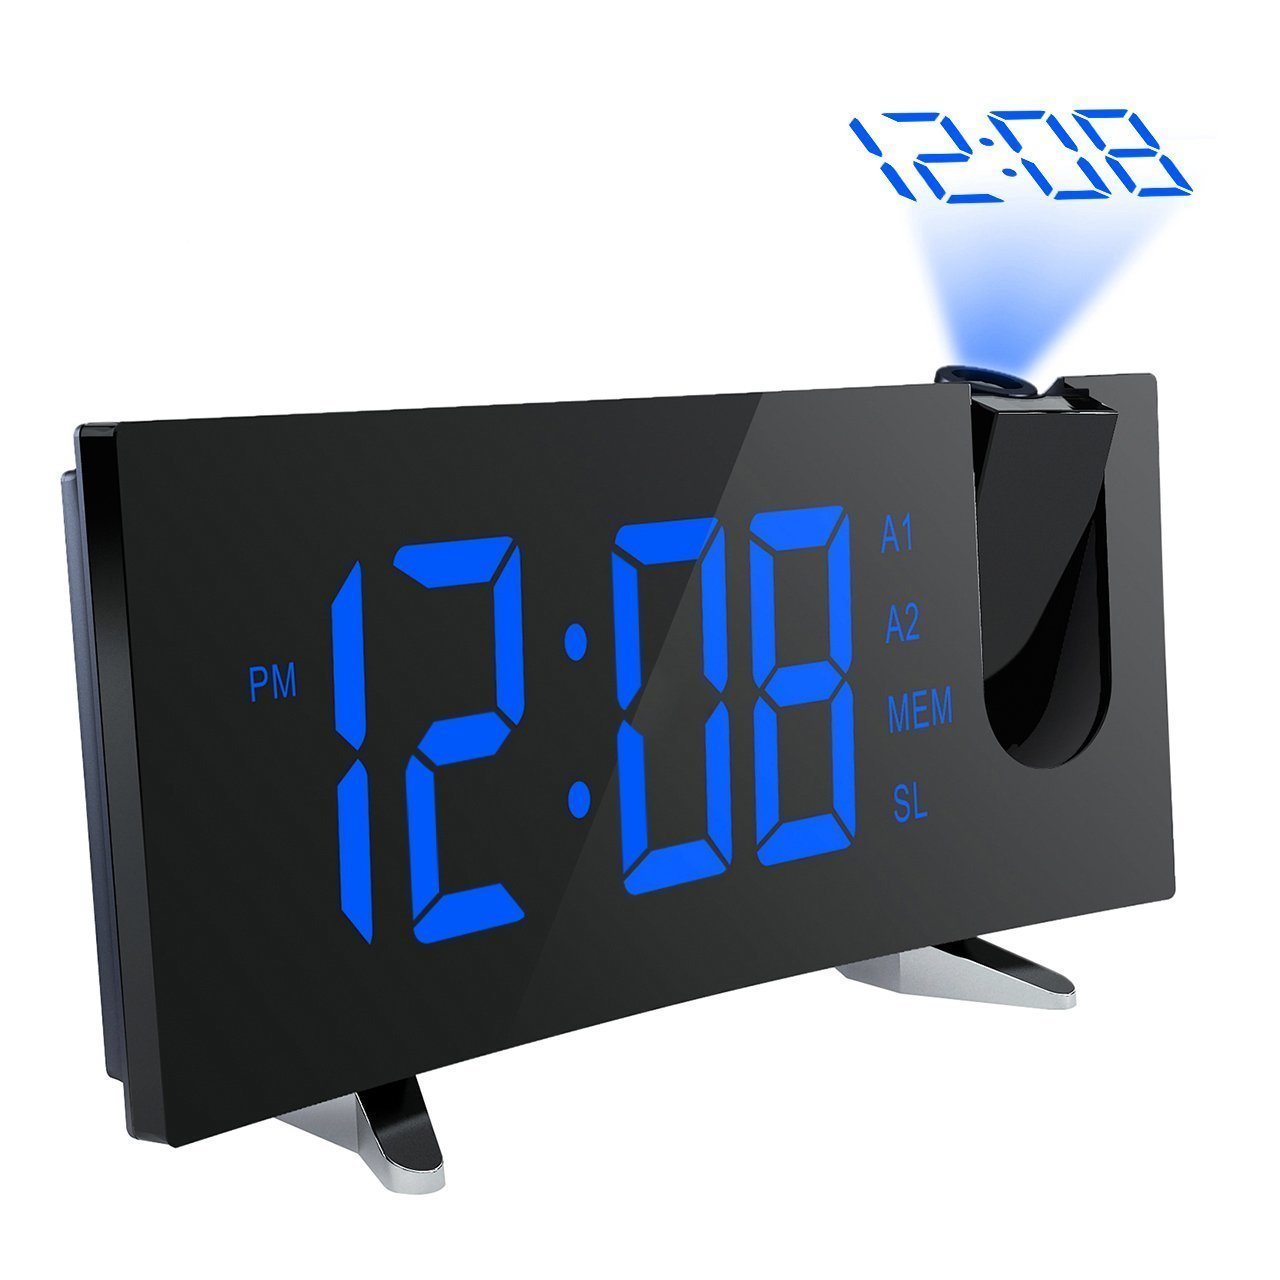 PICTEK Projection Alarm Clock, [Curved-Screen] Projection Clock, Digital FM Clock Radio with Dual Alarms, 5'' LED Display, USB Charging, Battery Backup